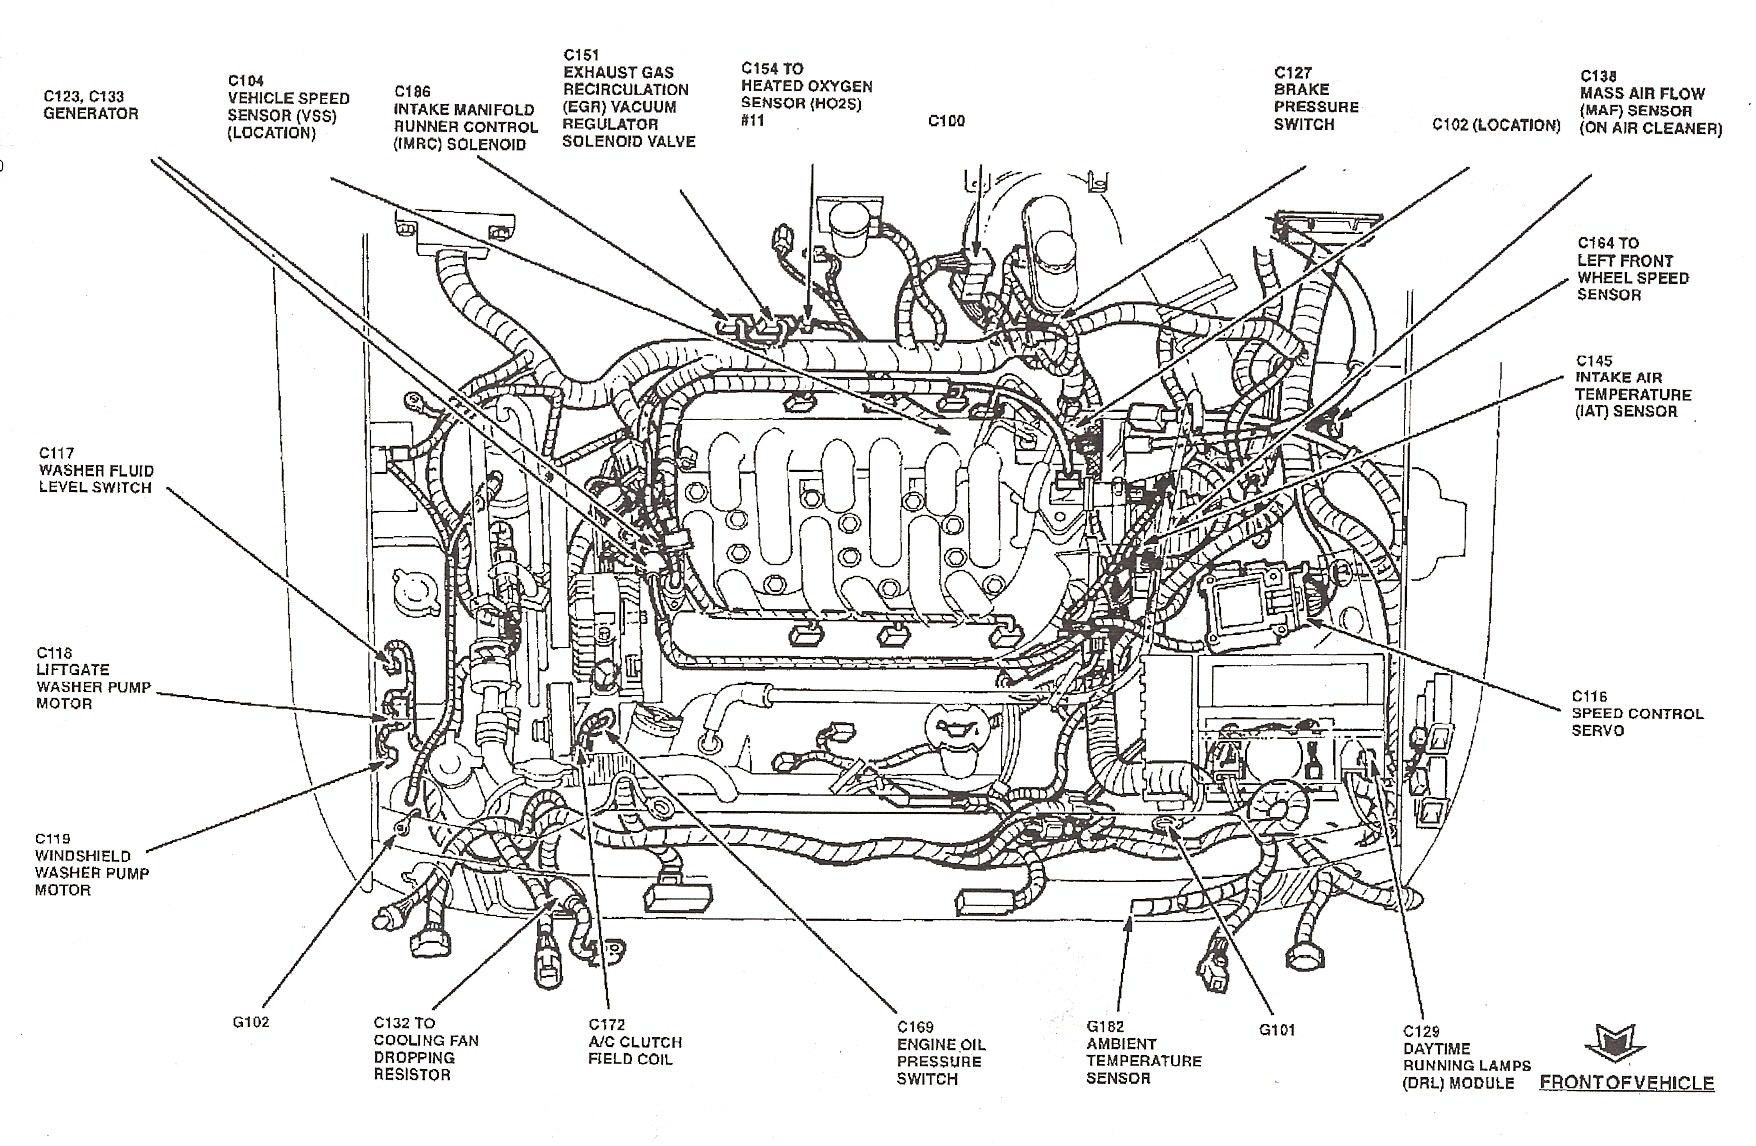 2001 ford focus zx3 radio wiring diagram diagrams for a half hot switched outlet 2002 zetec engine  free